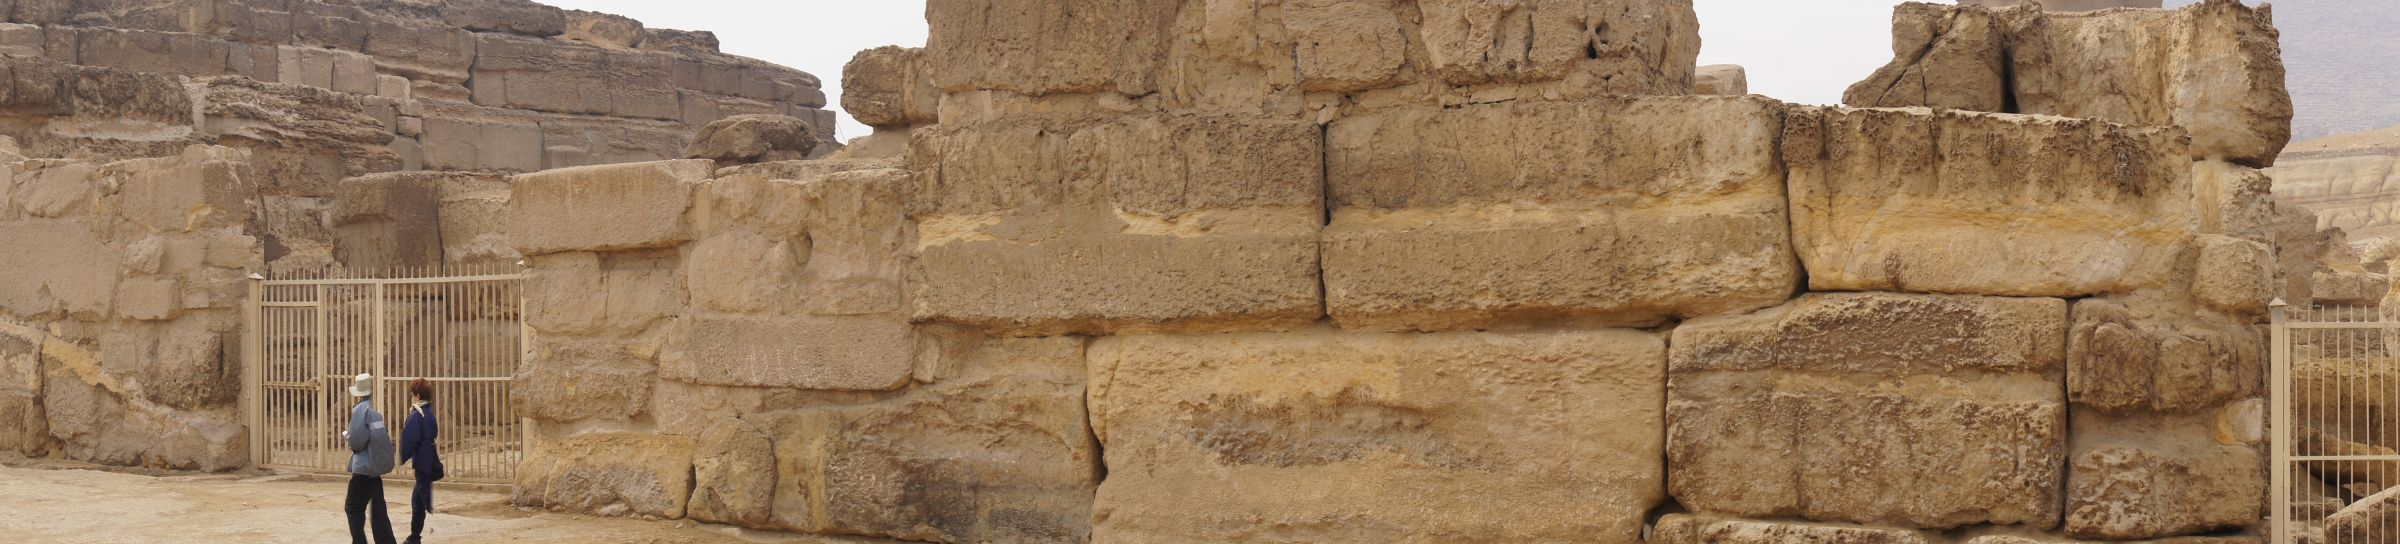 Khafre Pyramid Complex and Sphinx Complex: Site: Giza; View: Sphinx Temple, Khafre Valley Temple